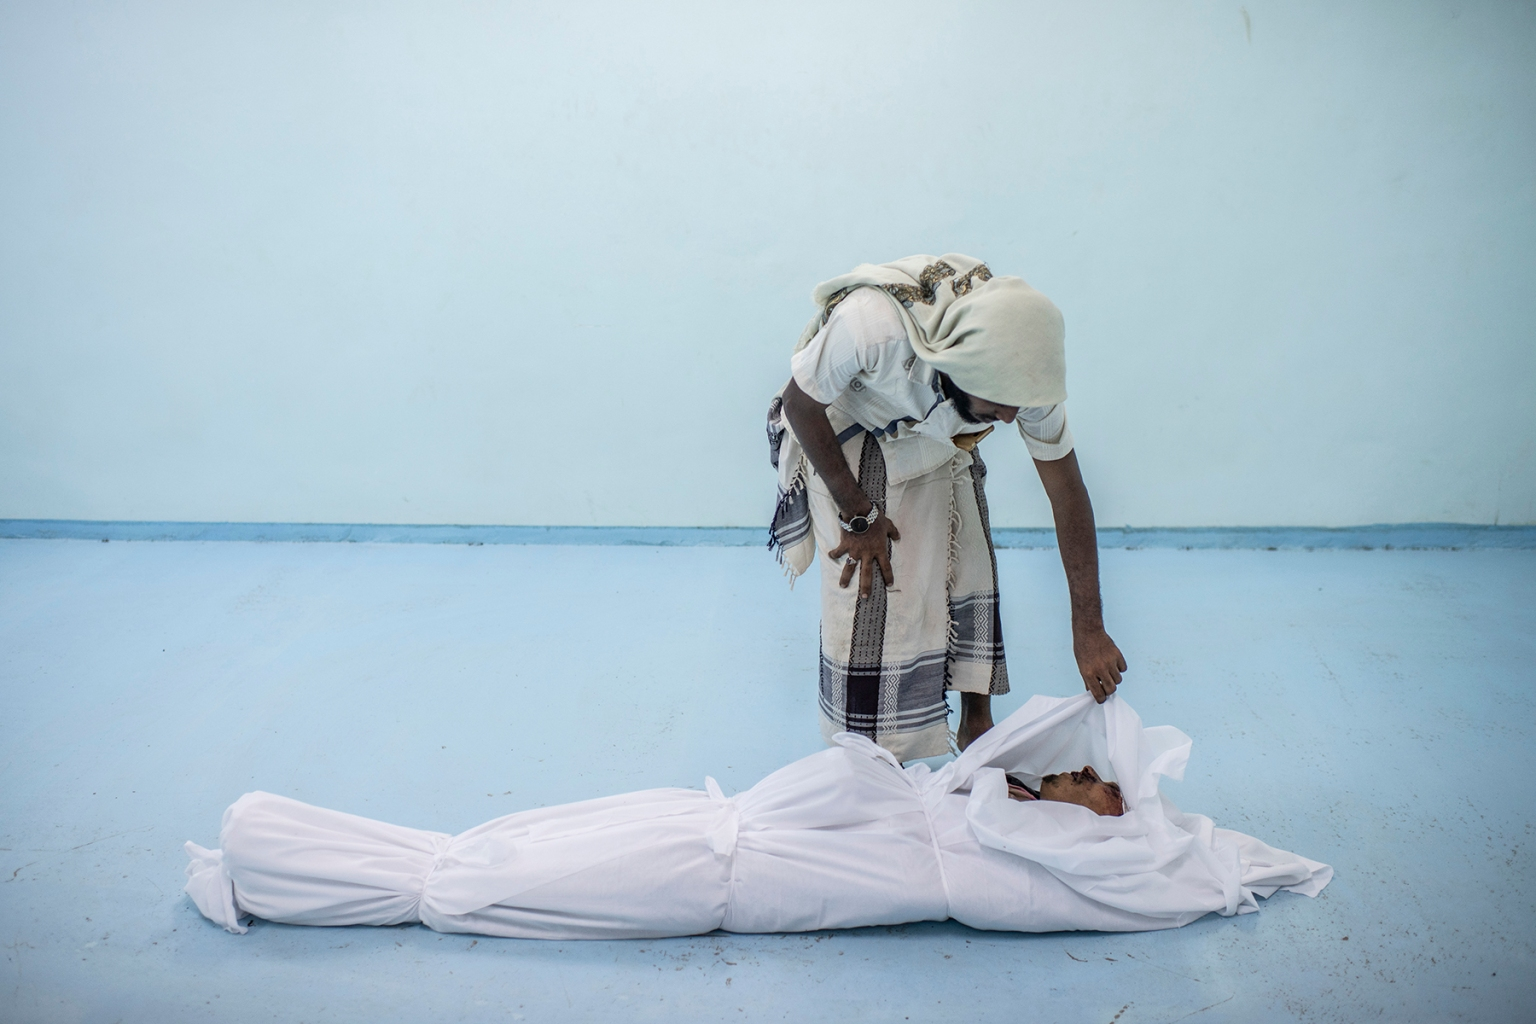 The body of a Yemeni fighter killed in Hodeidah is attended to by a friend at the morgue of a field hospital in Al Khawkhah, Yemen, on on Sept. 22. Andrew Renneisen/Getty Images